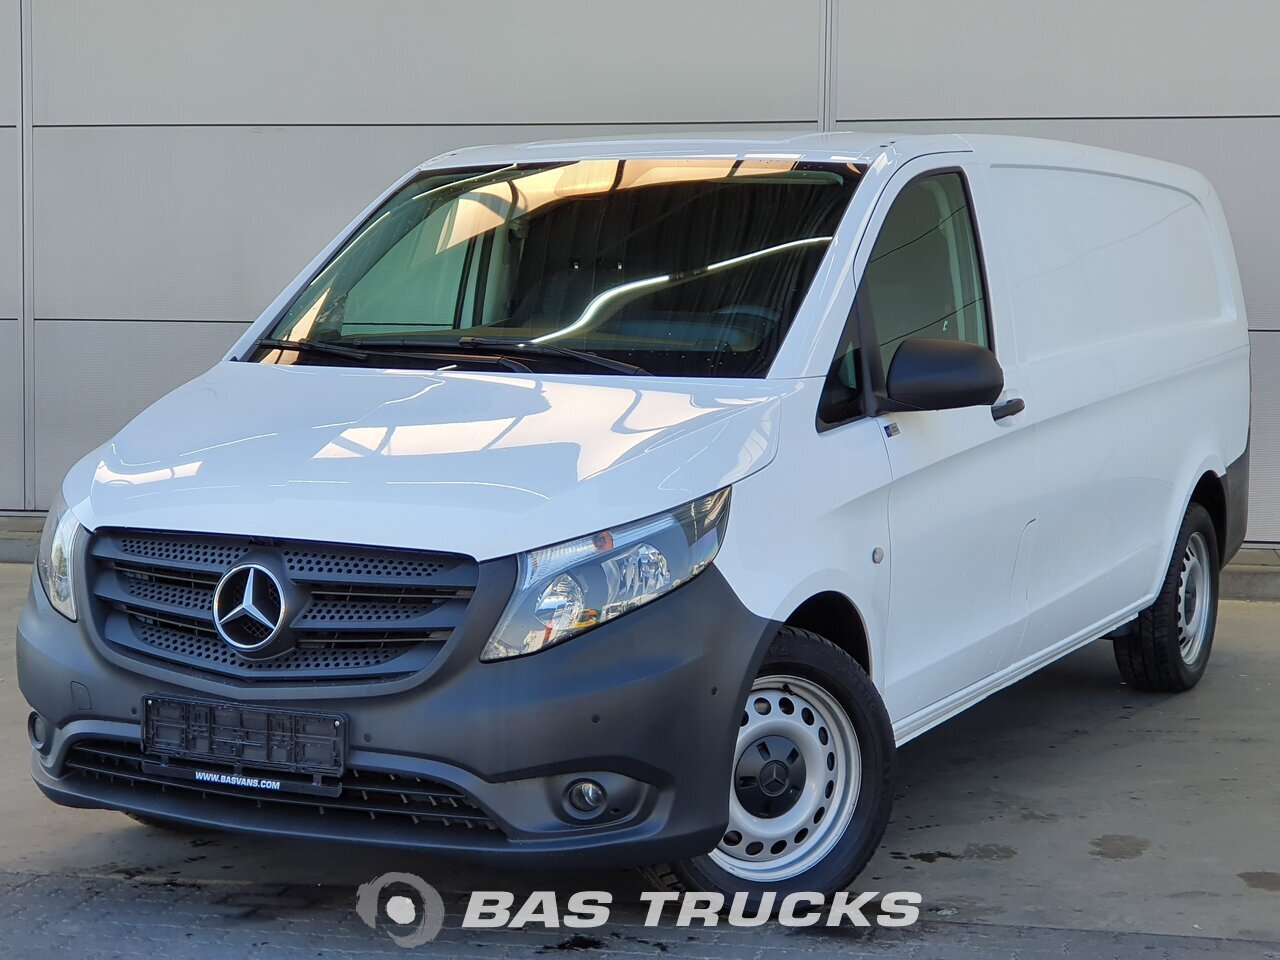 For sale at BAS Trucks: Mercedes Vito 03/2016